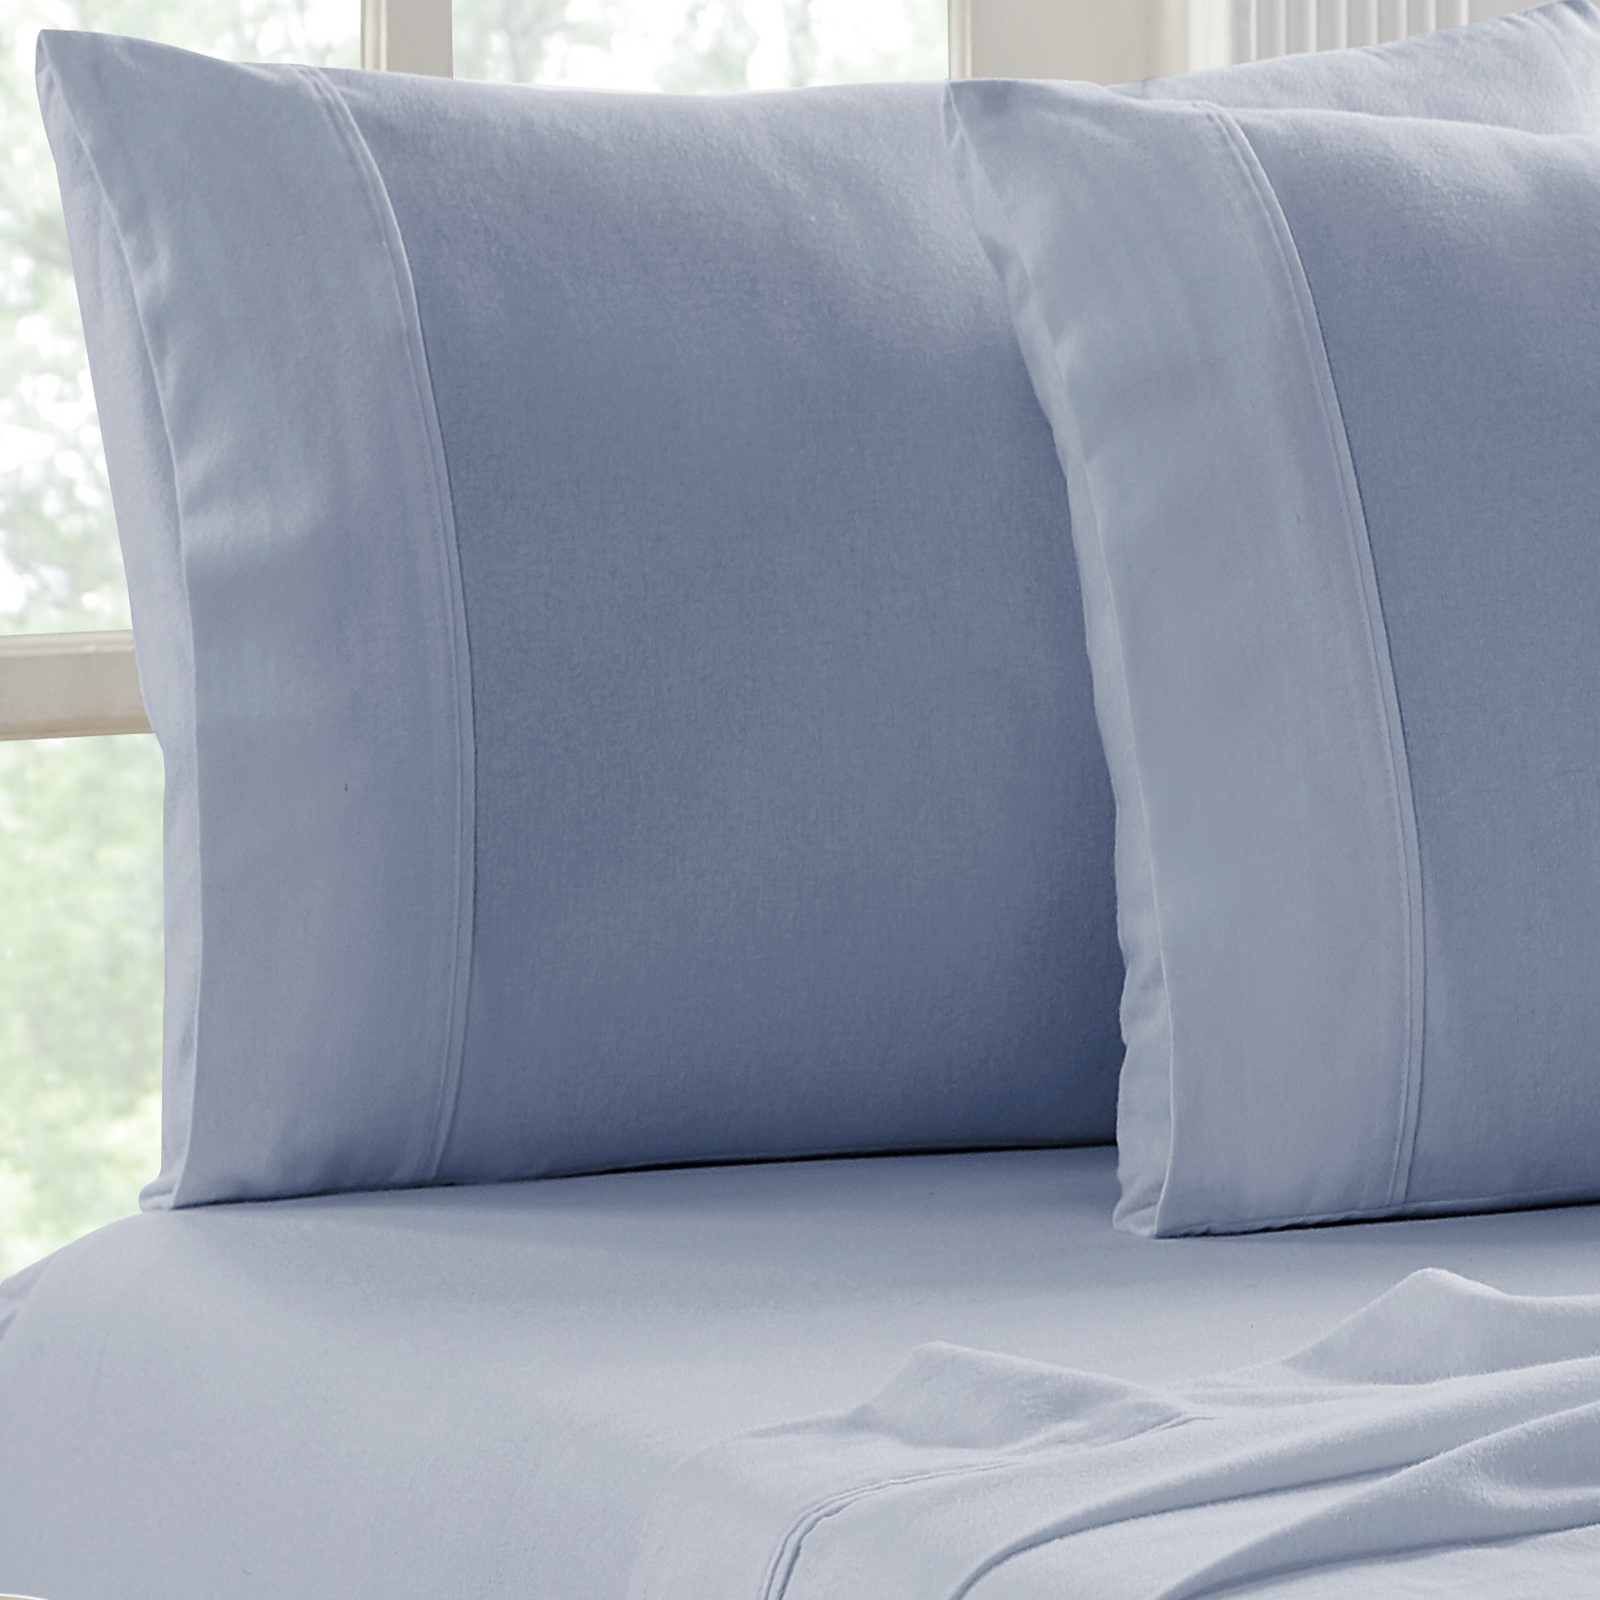 Flannel Sheet Set Egyptian Cotton 175 GSM Brushed - Colour Indigo - From $39.95